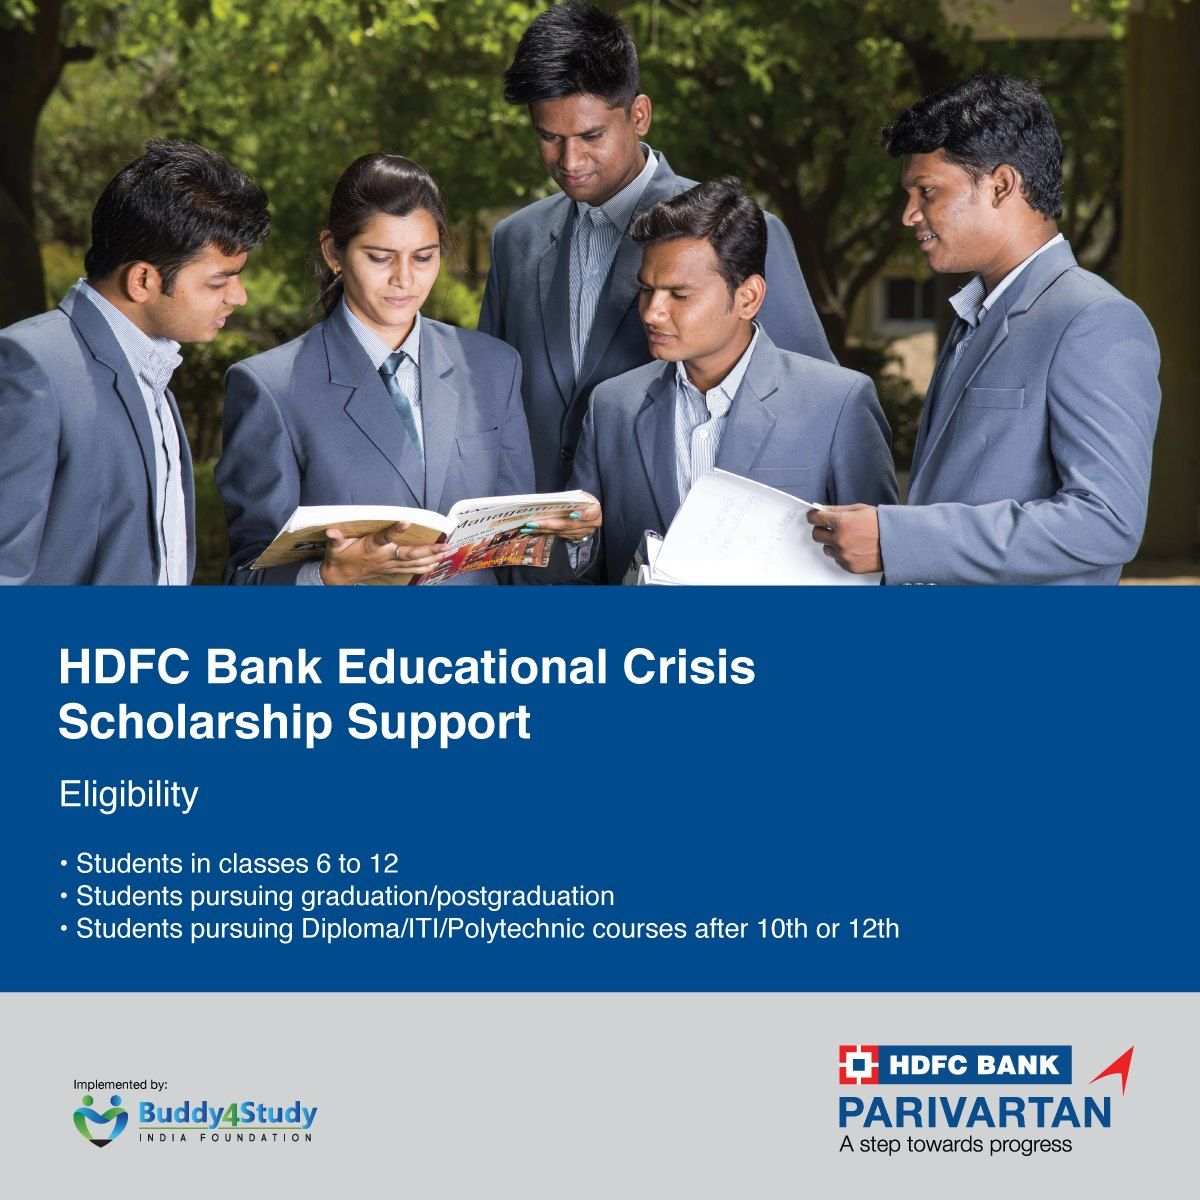 Pin By Buddy4study On Latest Scholarships 2020 Education